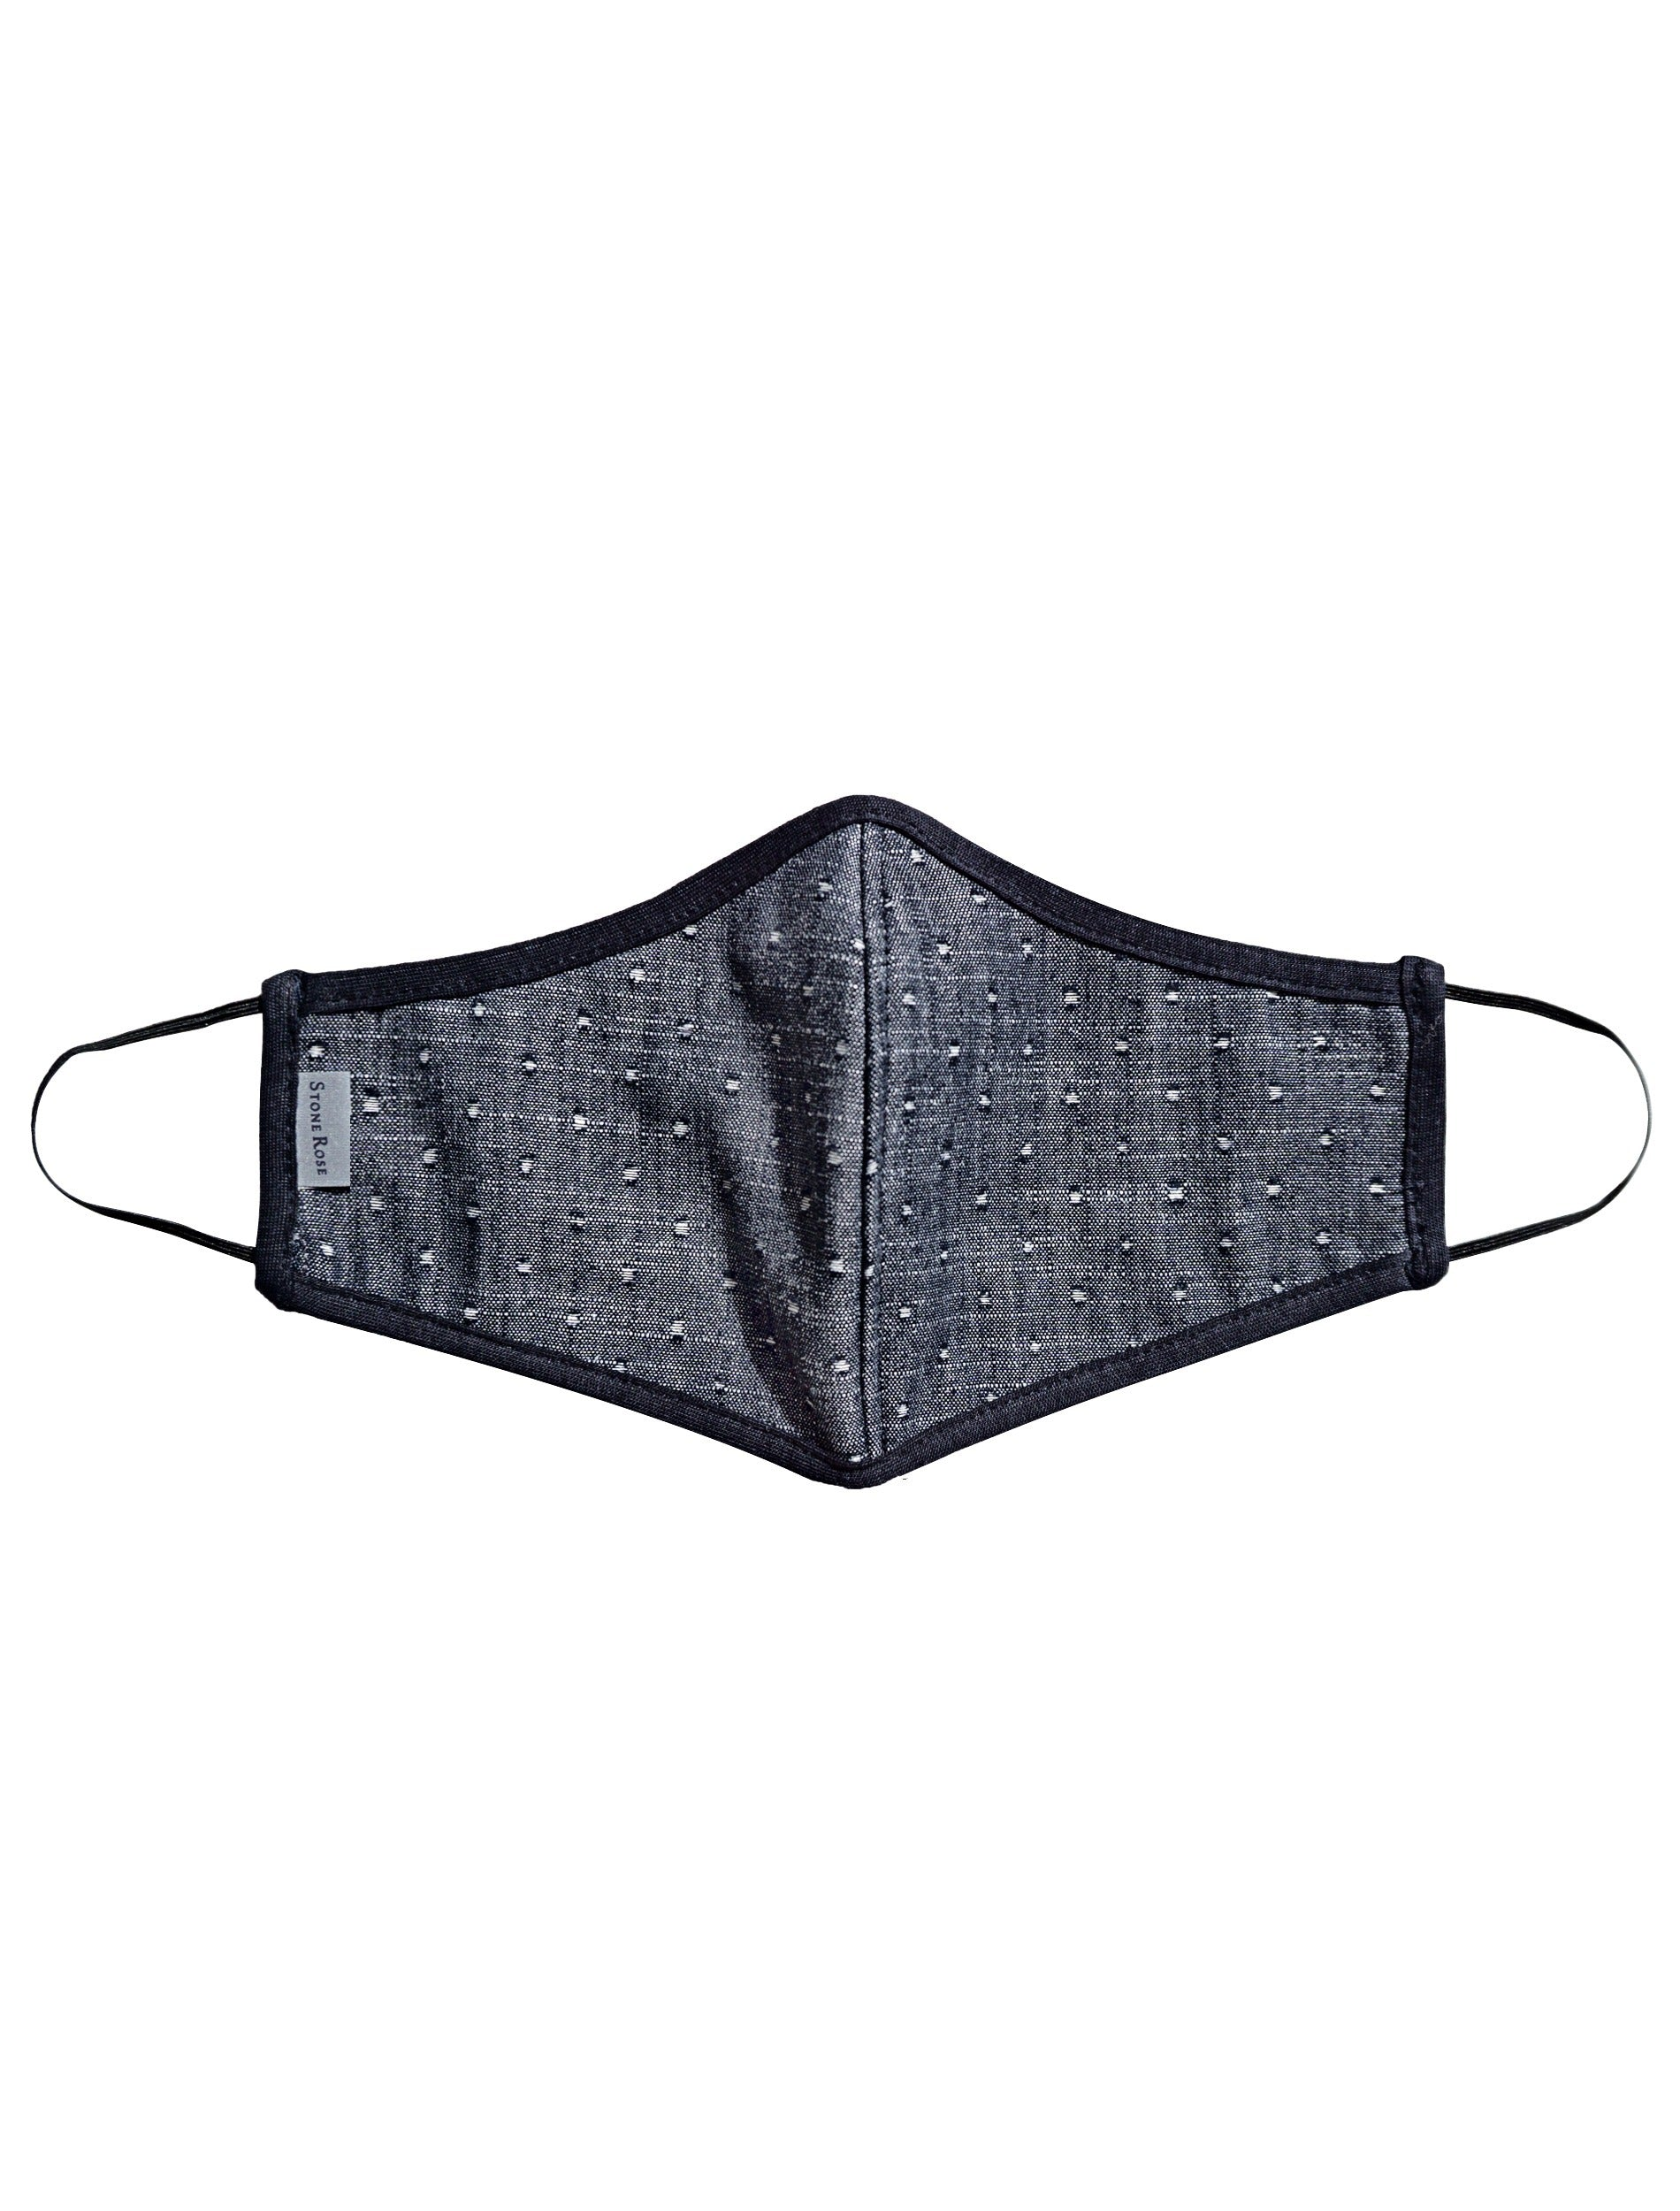 Dark Jean Polka Dot - Reusable Lighweight Face Mask